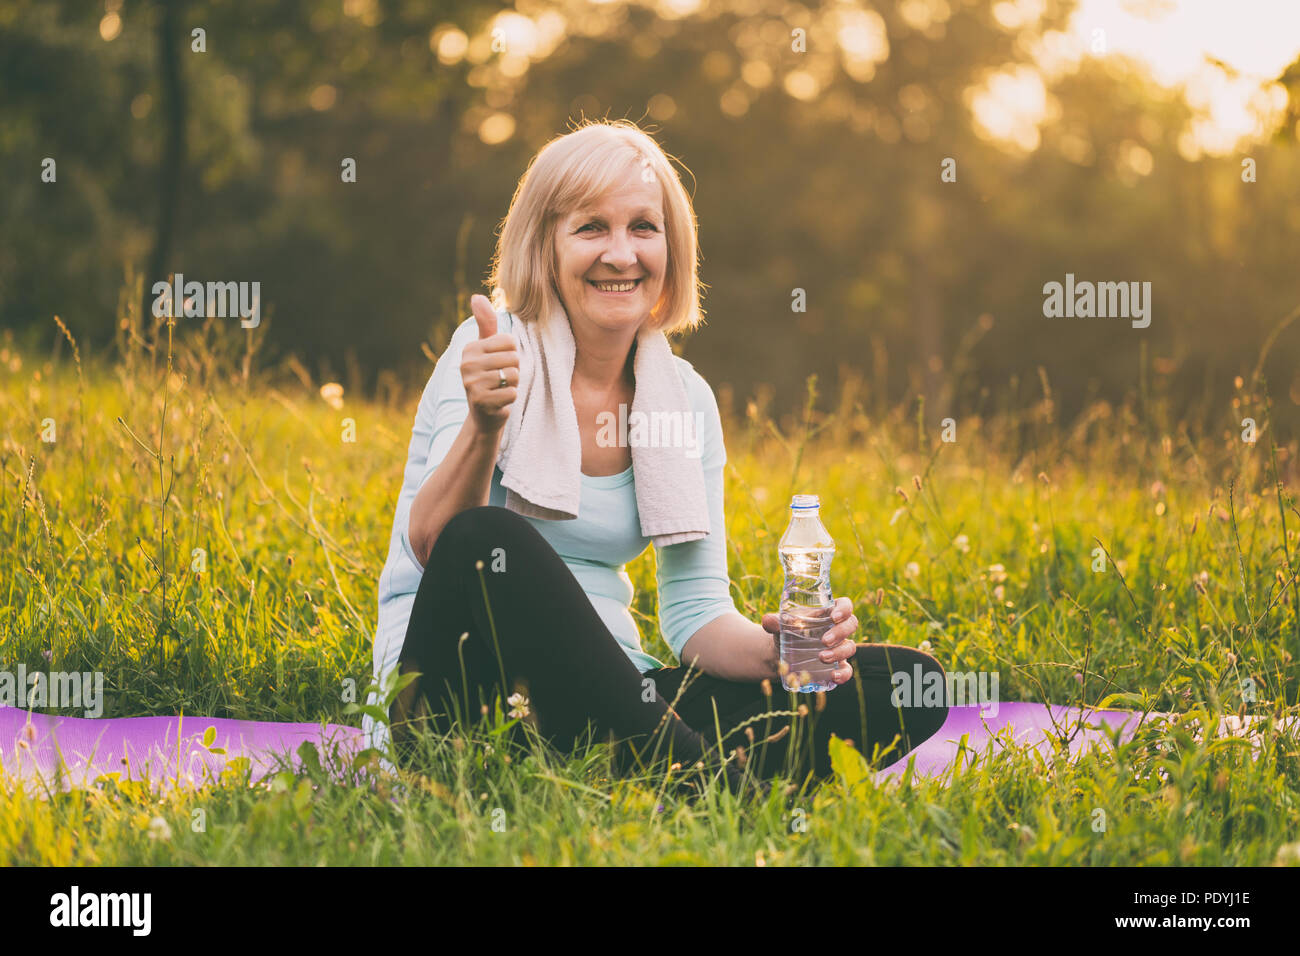 Active senior woman drinking water and showing thumb up during exercise.Image is intentionally toned. - Stock Image